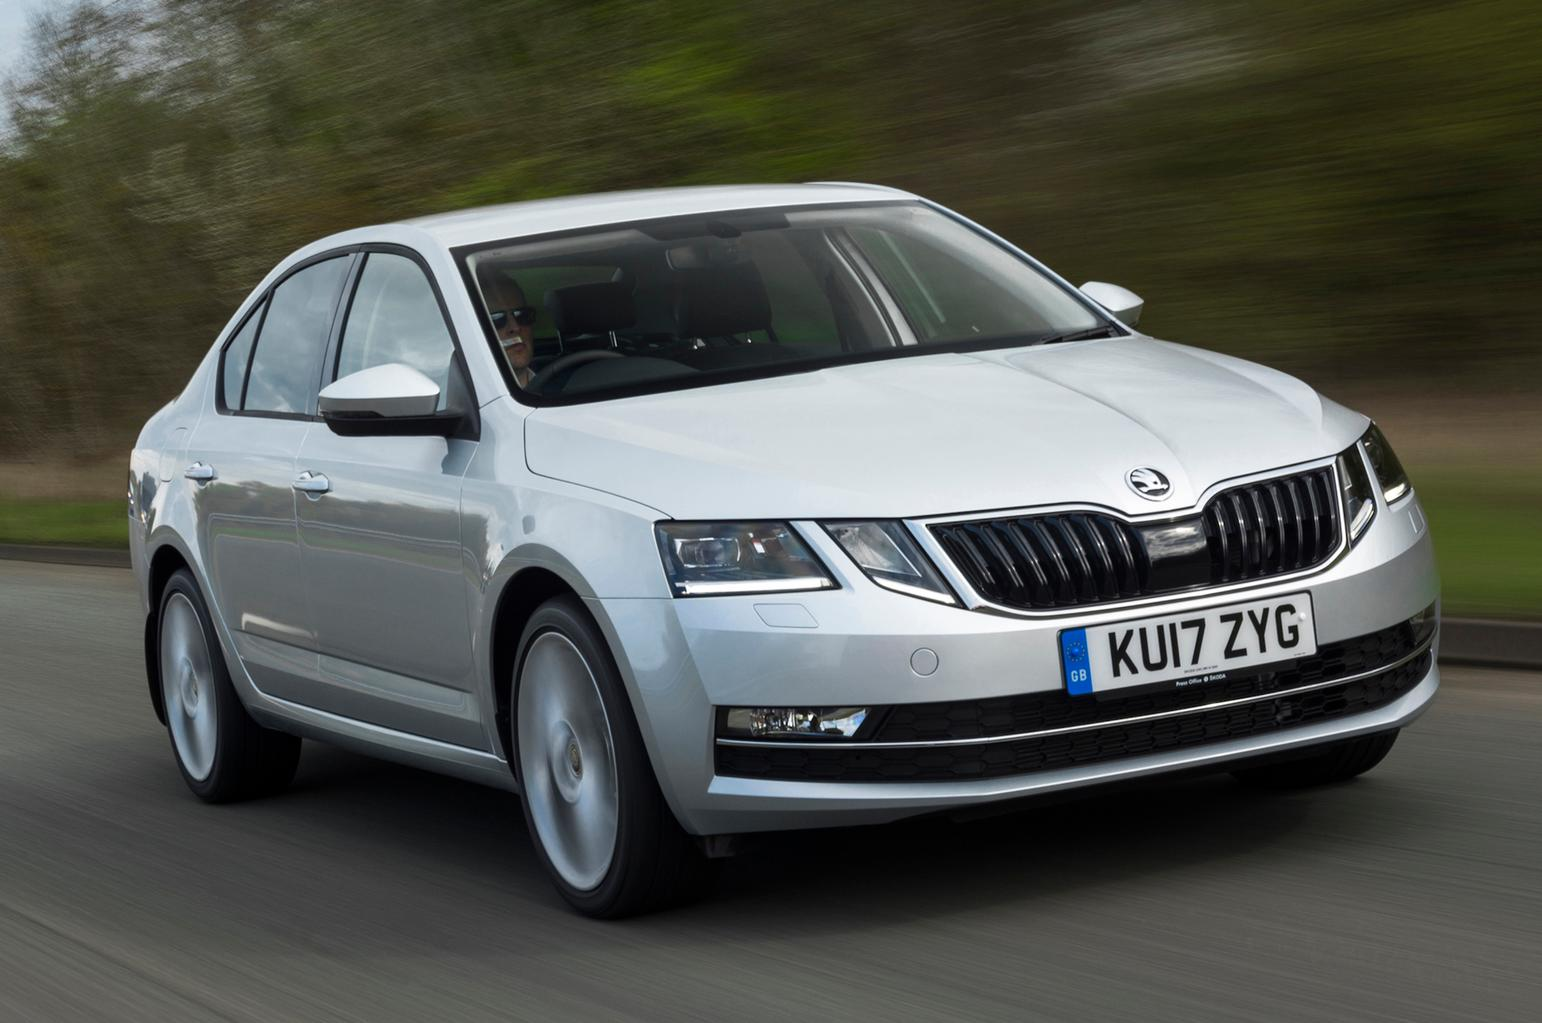 Best automatic cars for less than £20,000